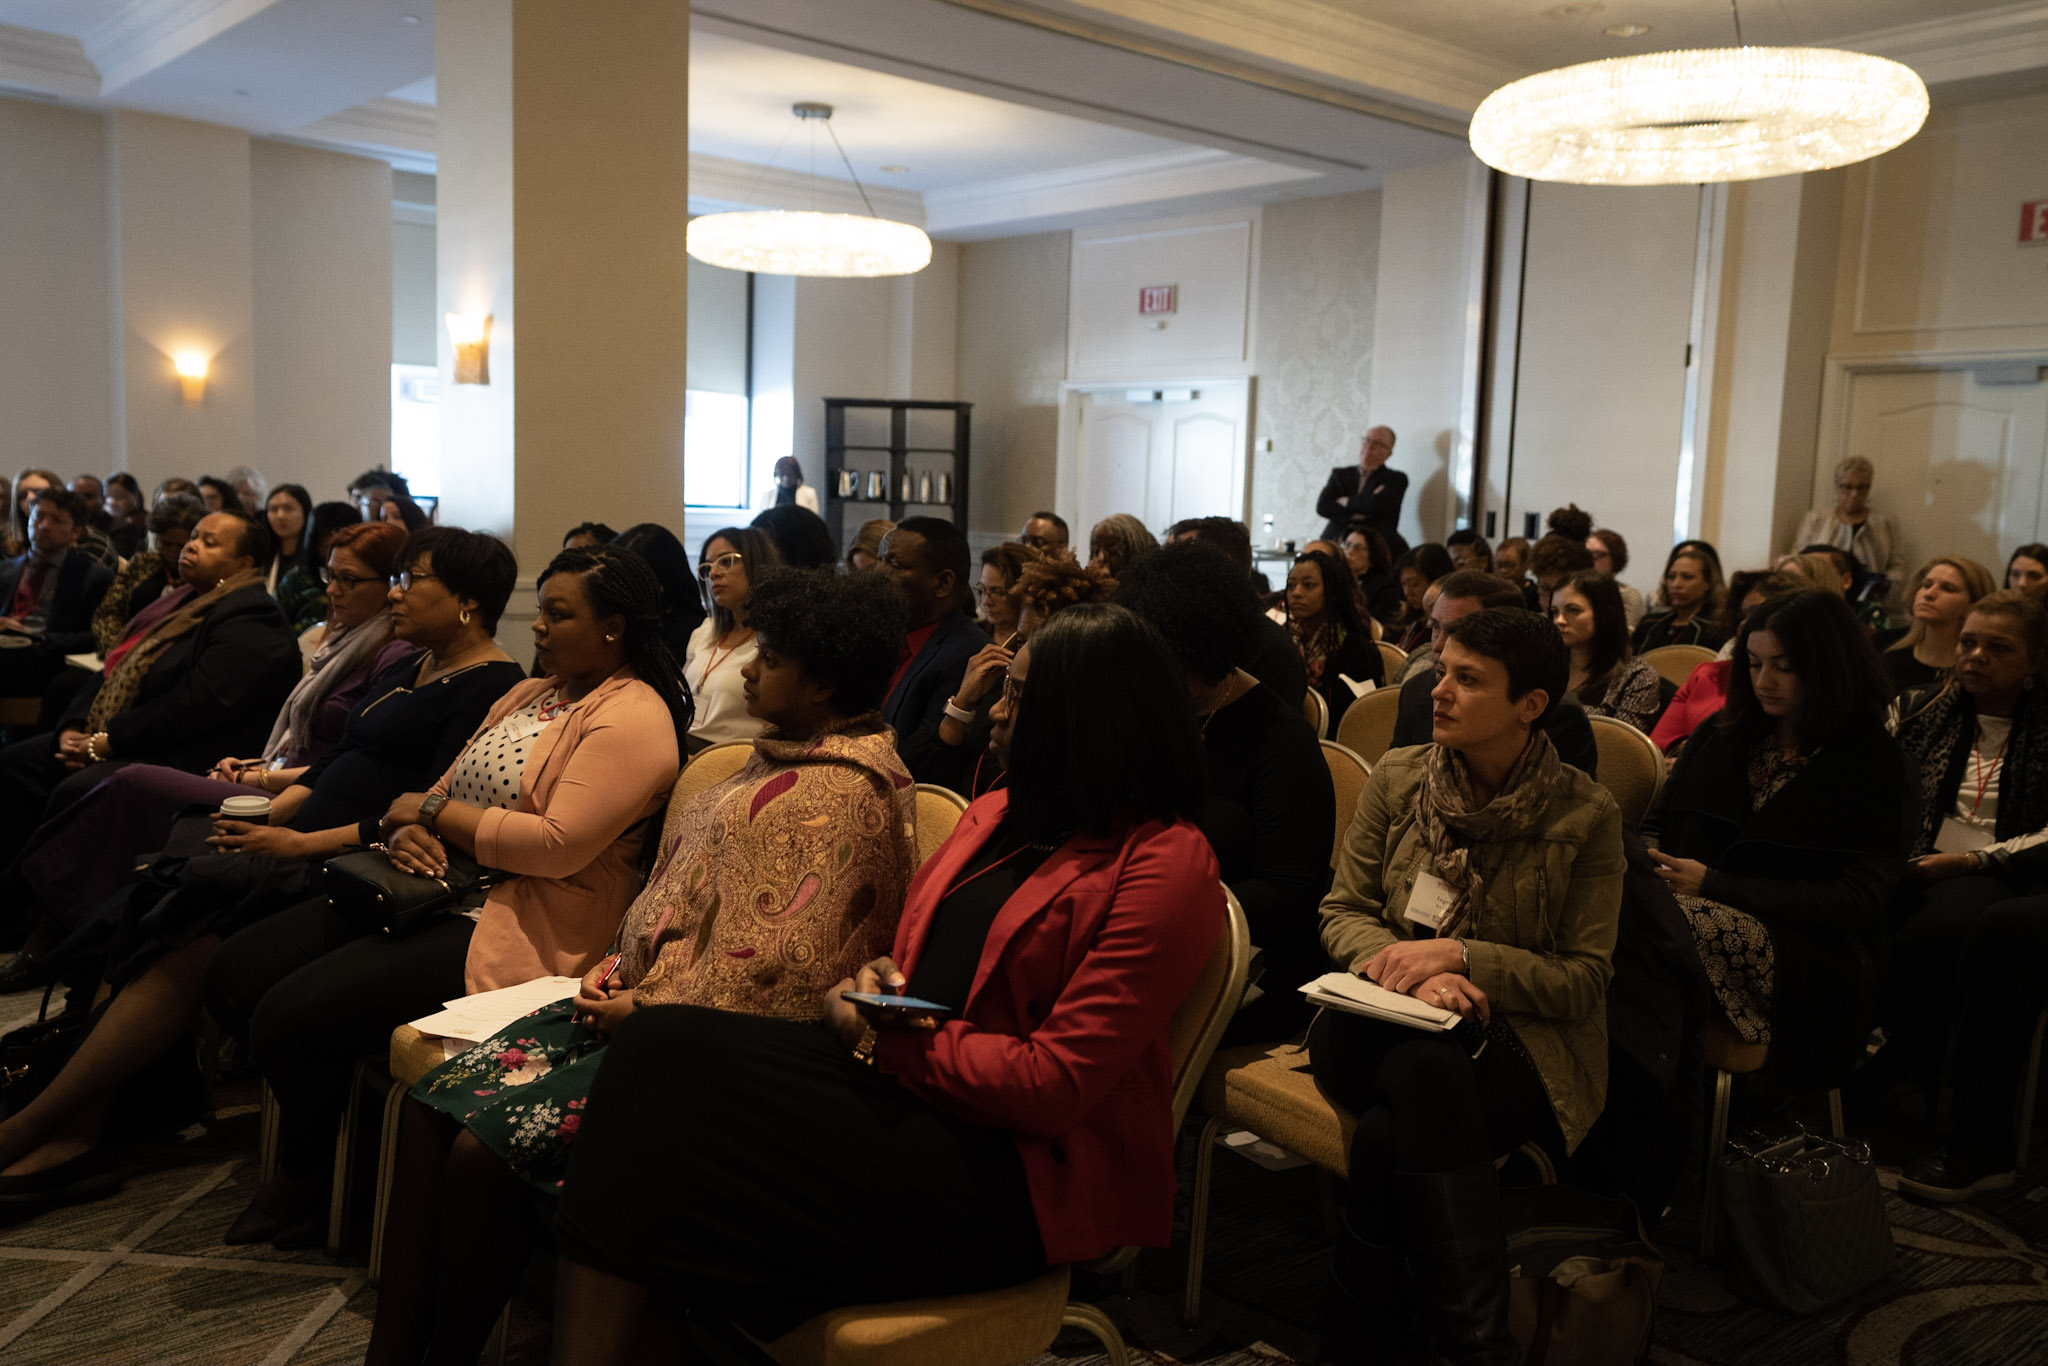 2019 Philadelphia Diversity & Inclusion Conference-107735-March 26, 2019103.jpg